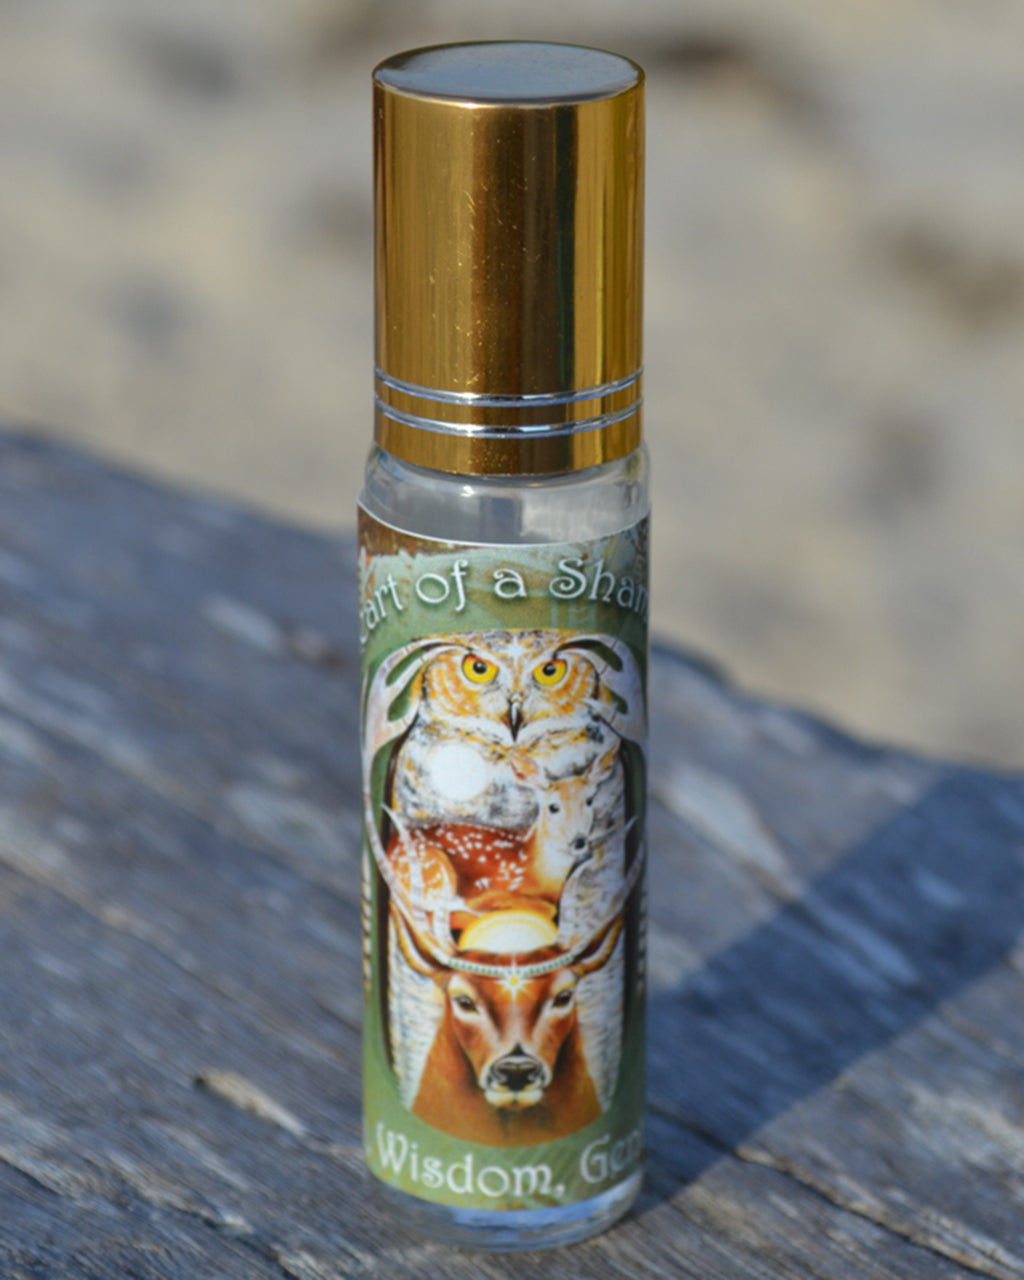 """HEART OF A SHAMAN"" ESSENTIAL OIL PERFUME"